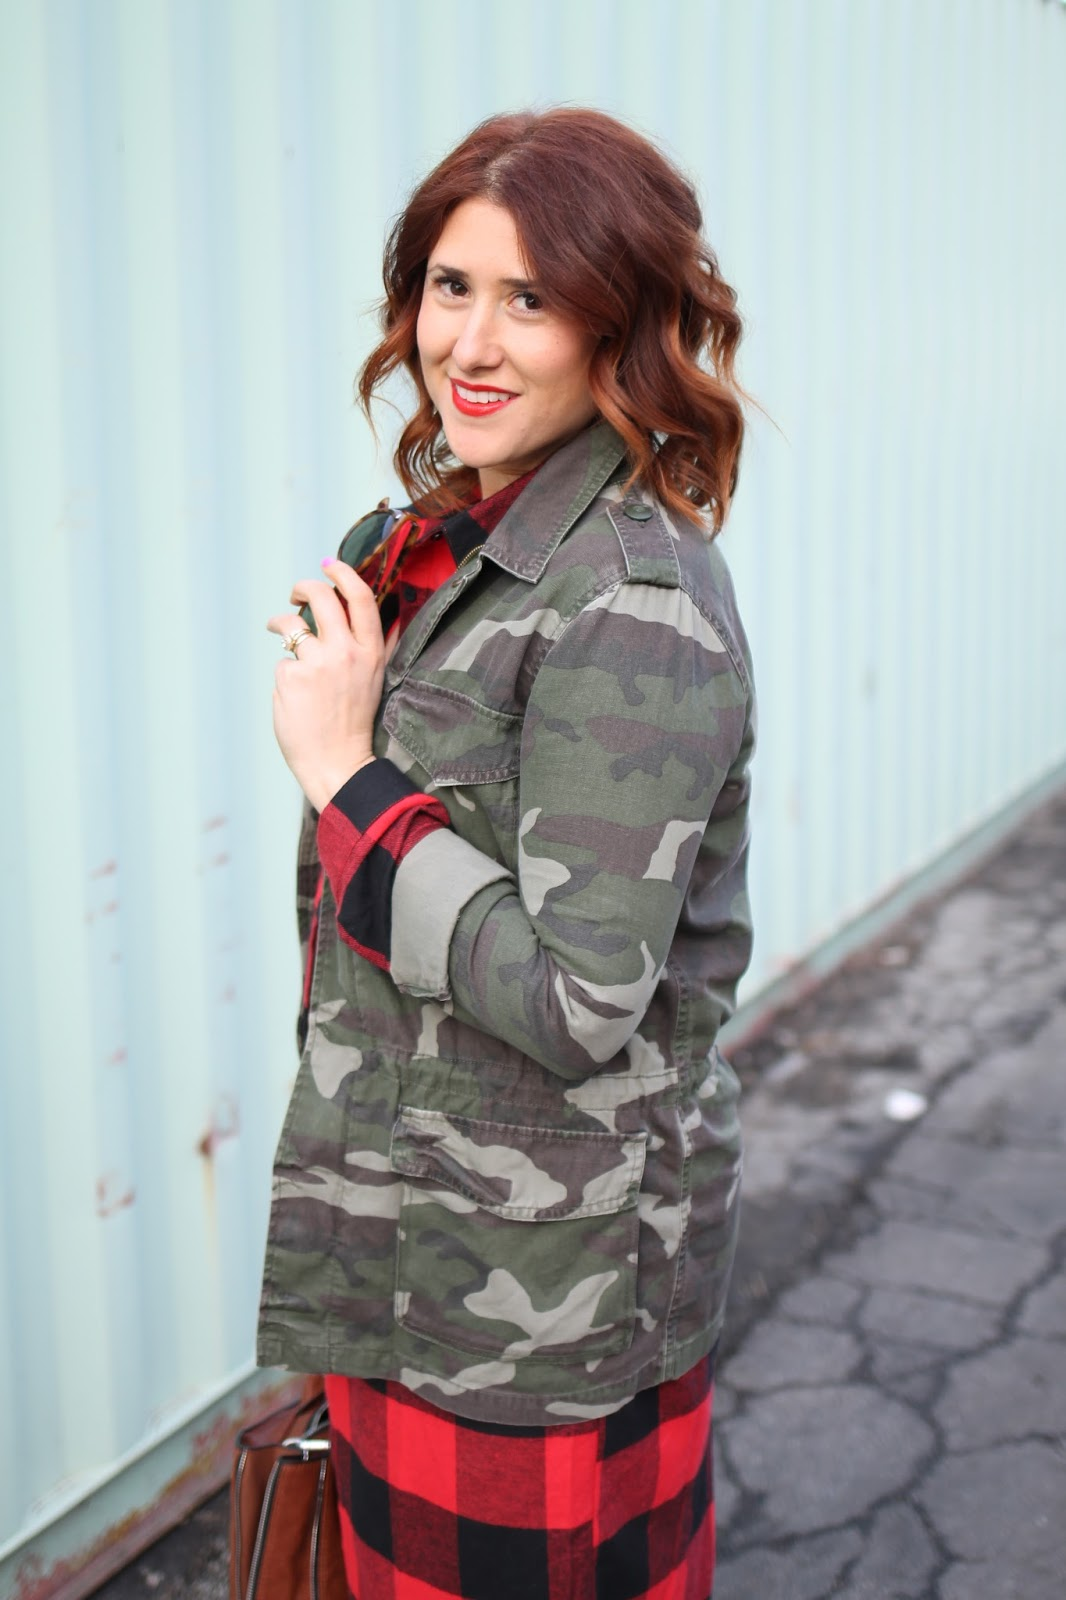 army camo surplus jacket, red lace slip, buffalo plaid check dress, curly red hair, red pumps